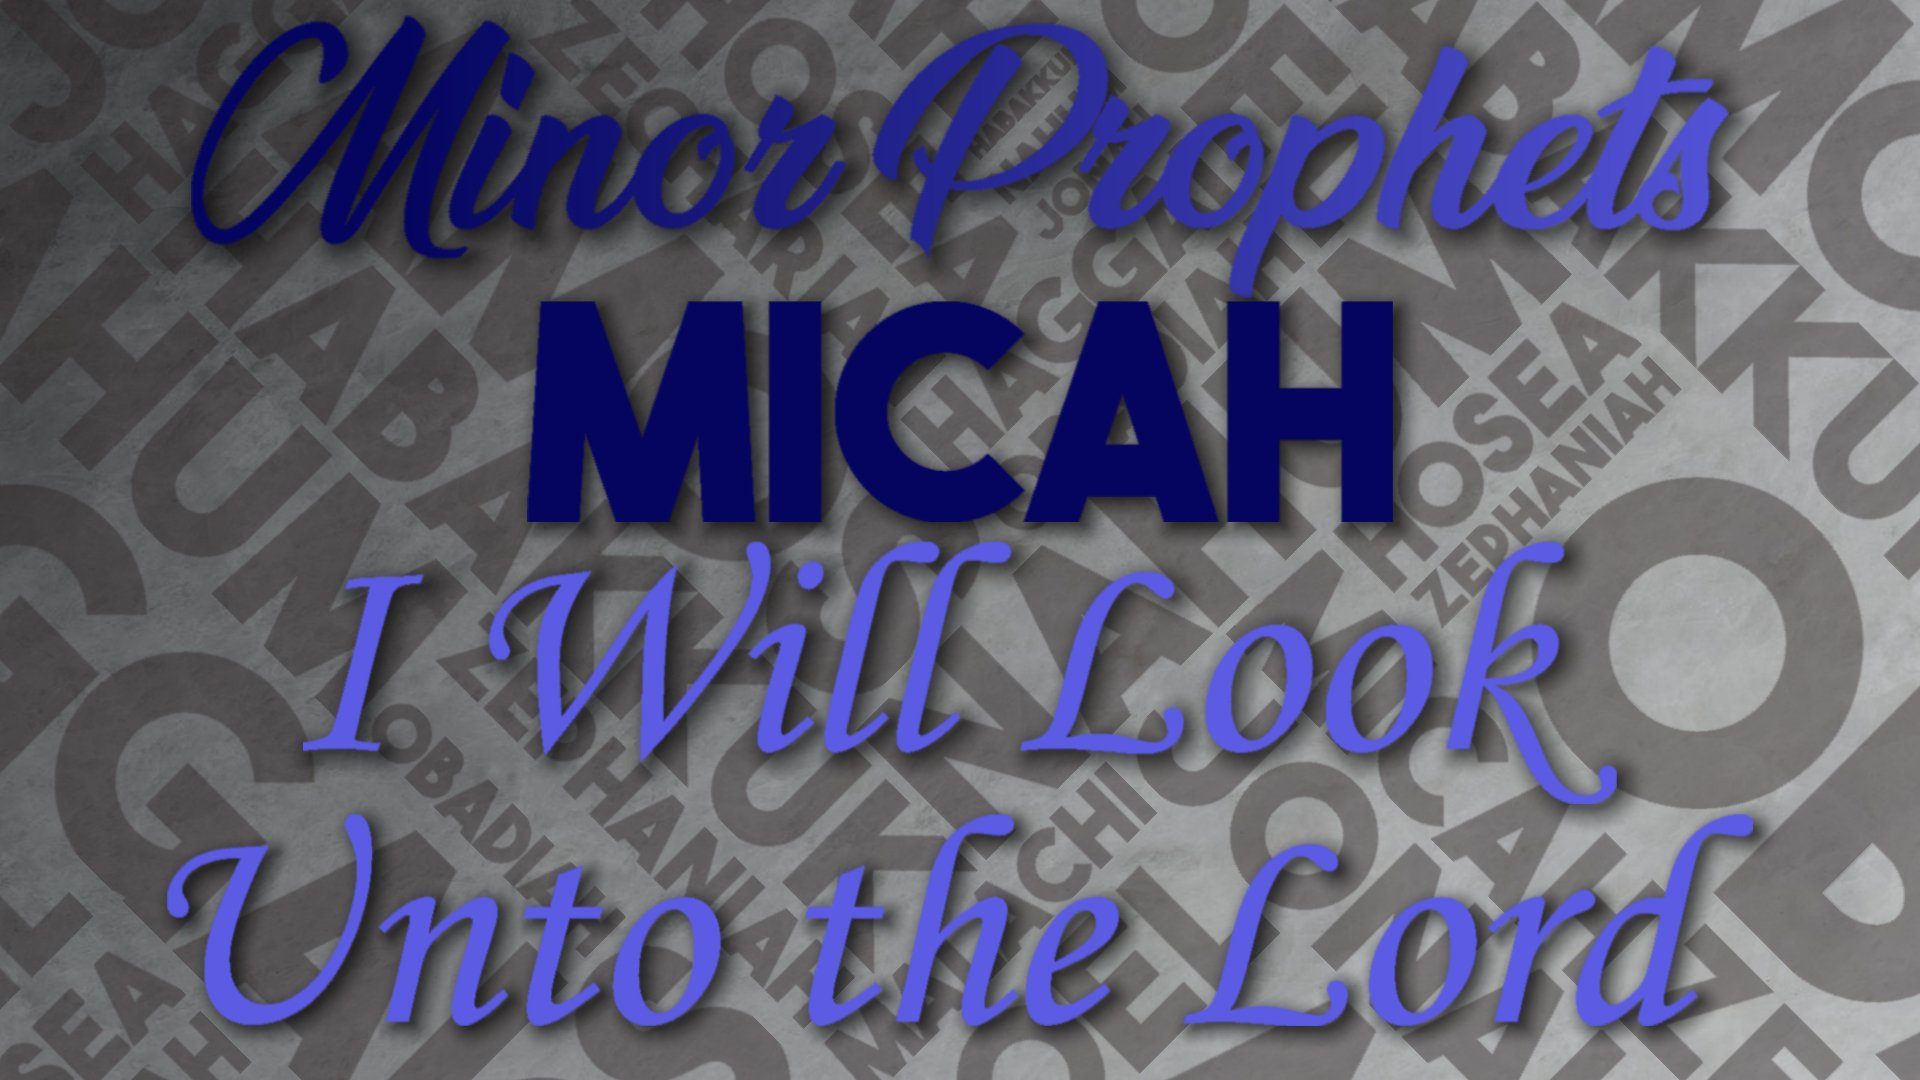 16 I Will Look Unto the Lord